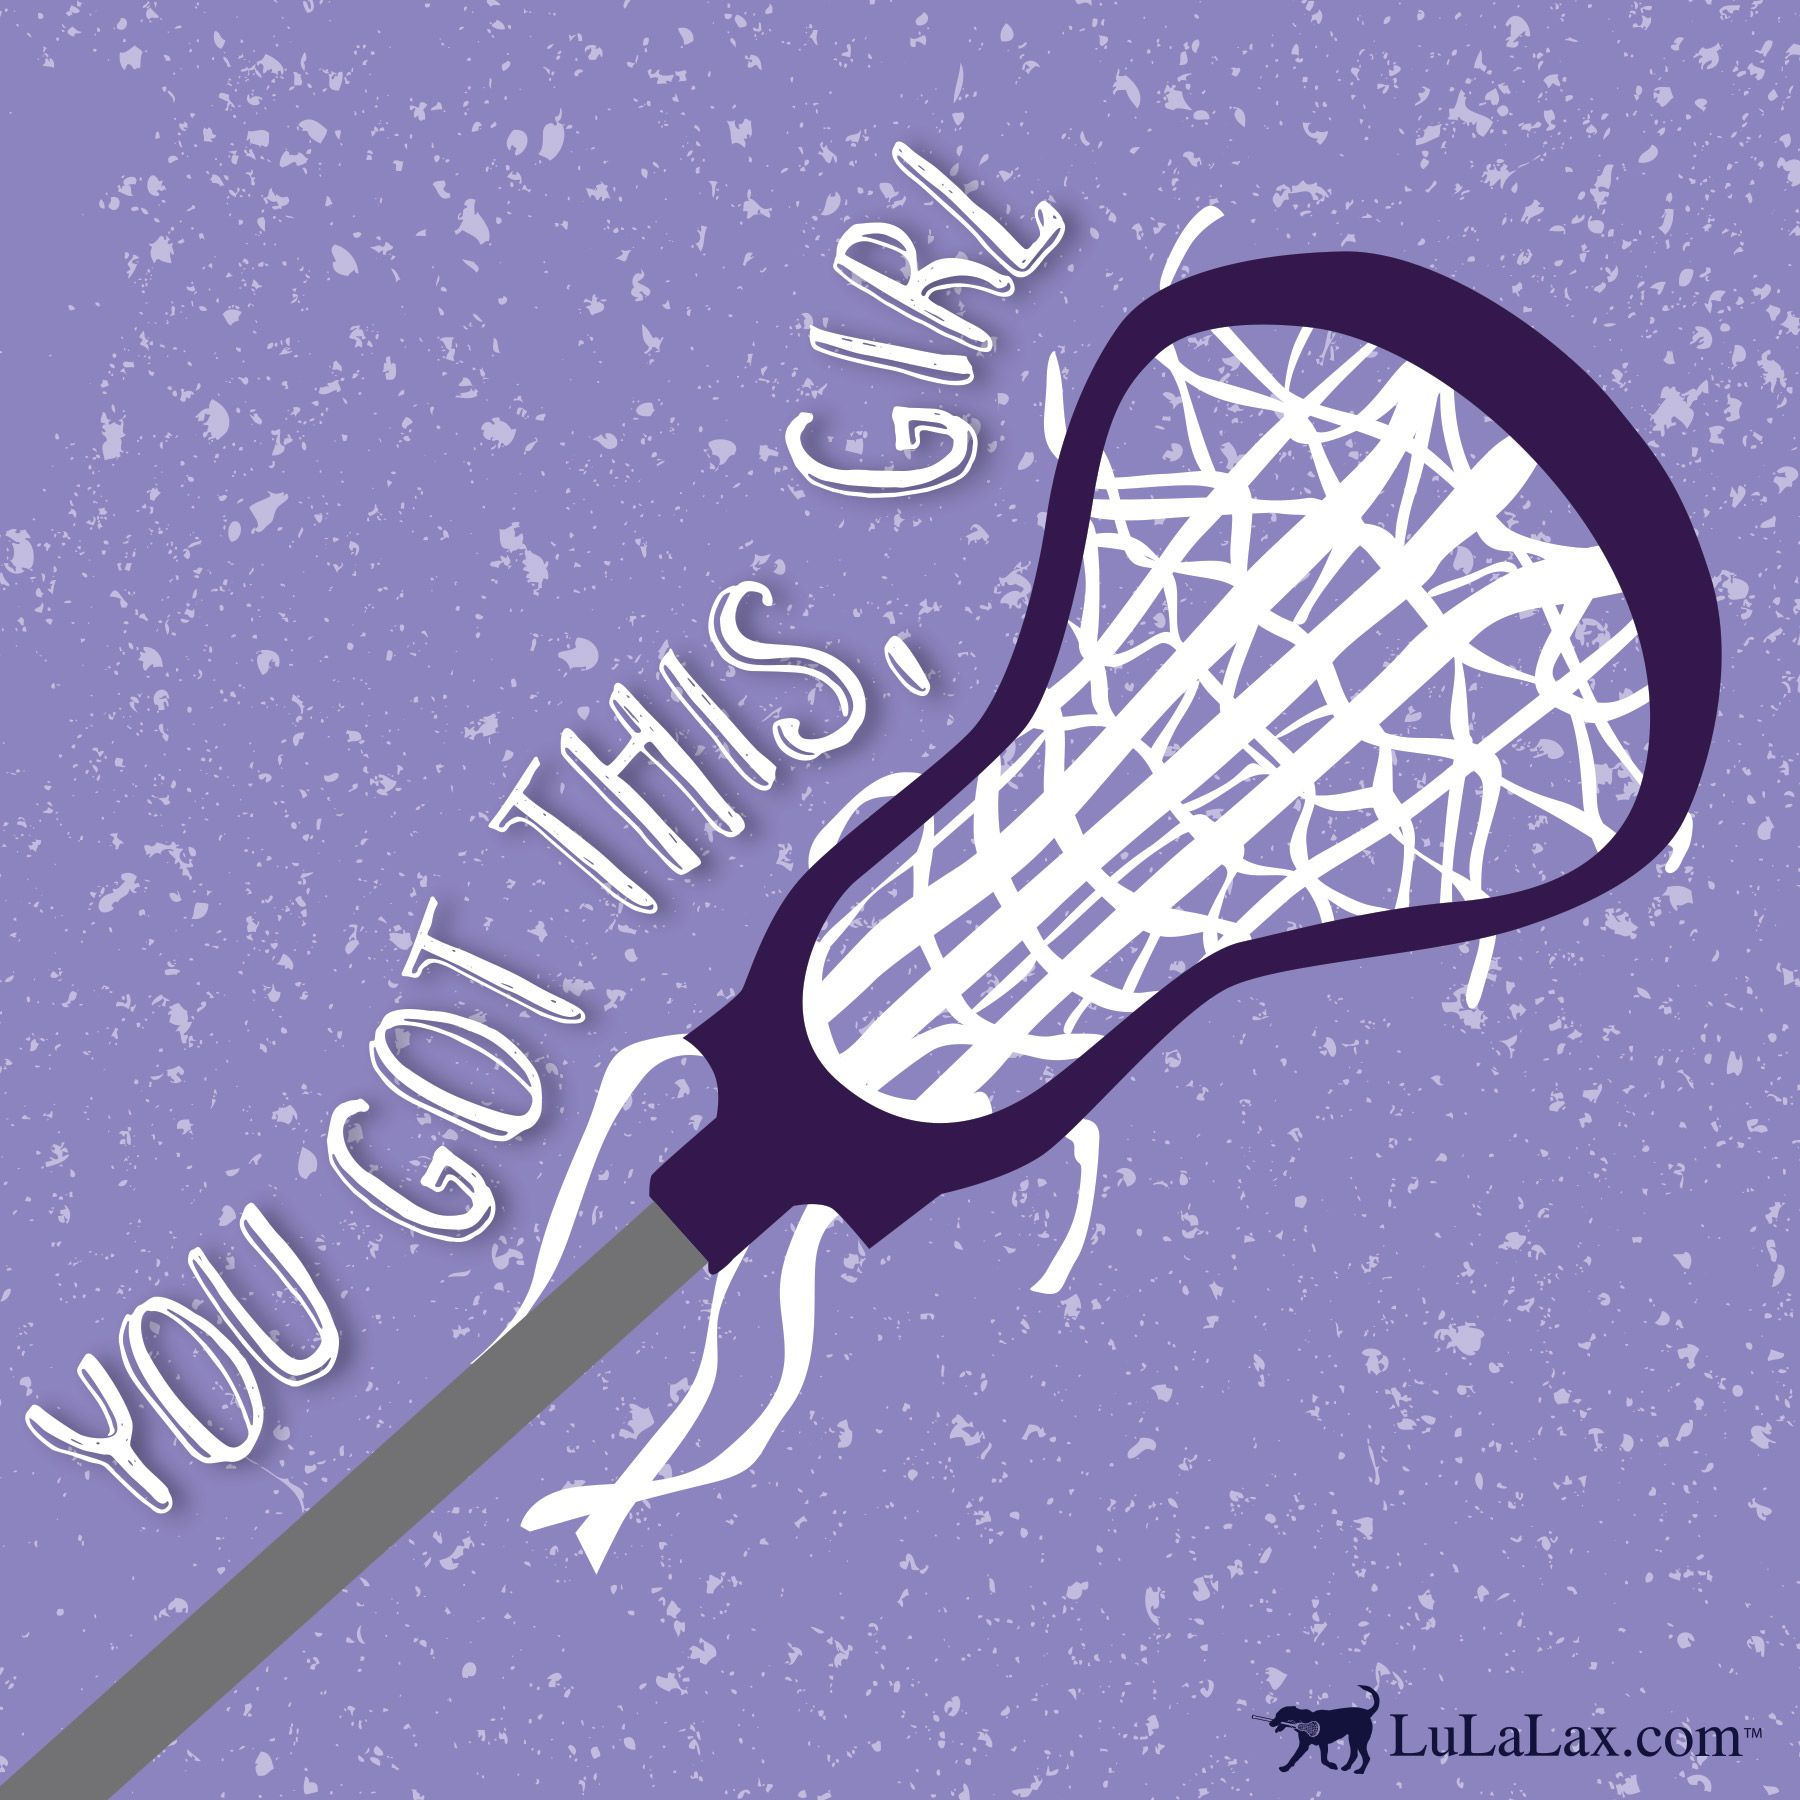 Lacrosse Quotes Just Believe In Yourself And Great Things Will Happen Lacrosse